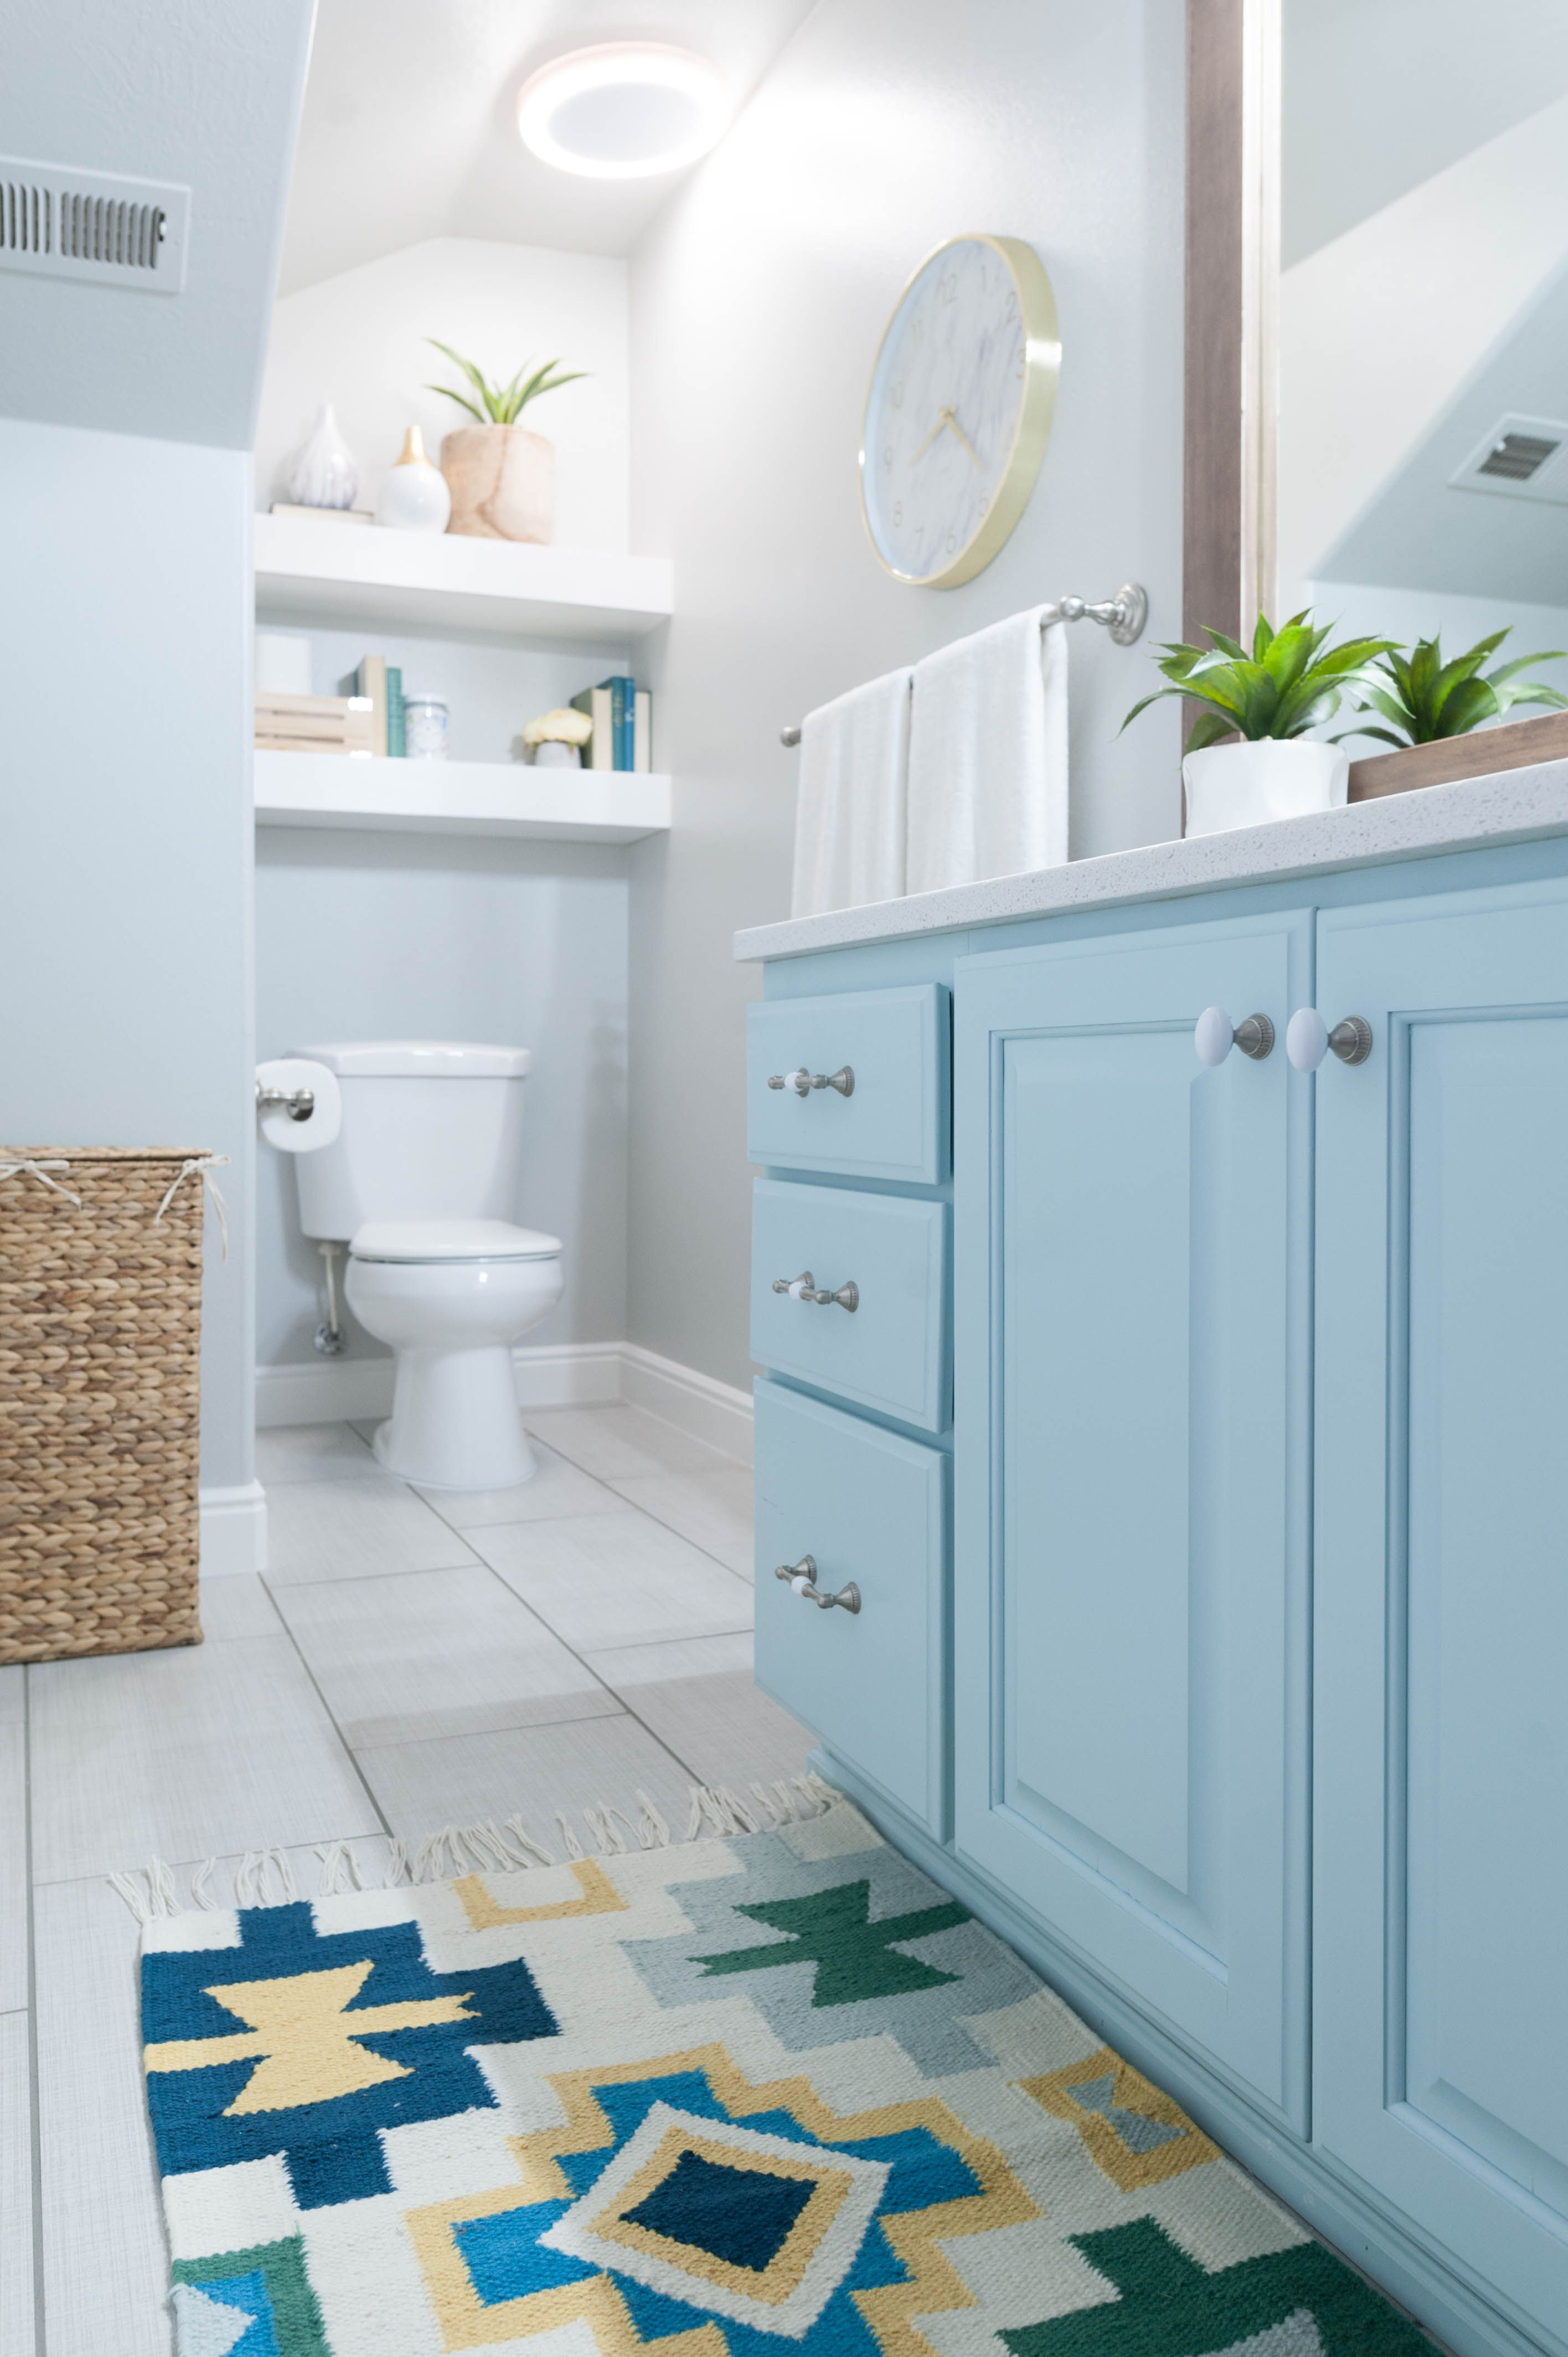 Kids Bathroom Remodel With Pops Of Light Turquoise Yellow regarding dimensions 2832 X 4256